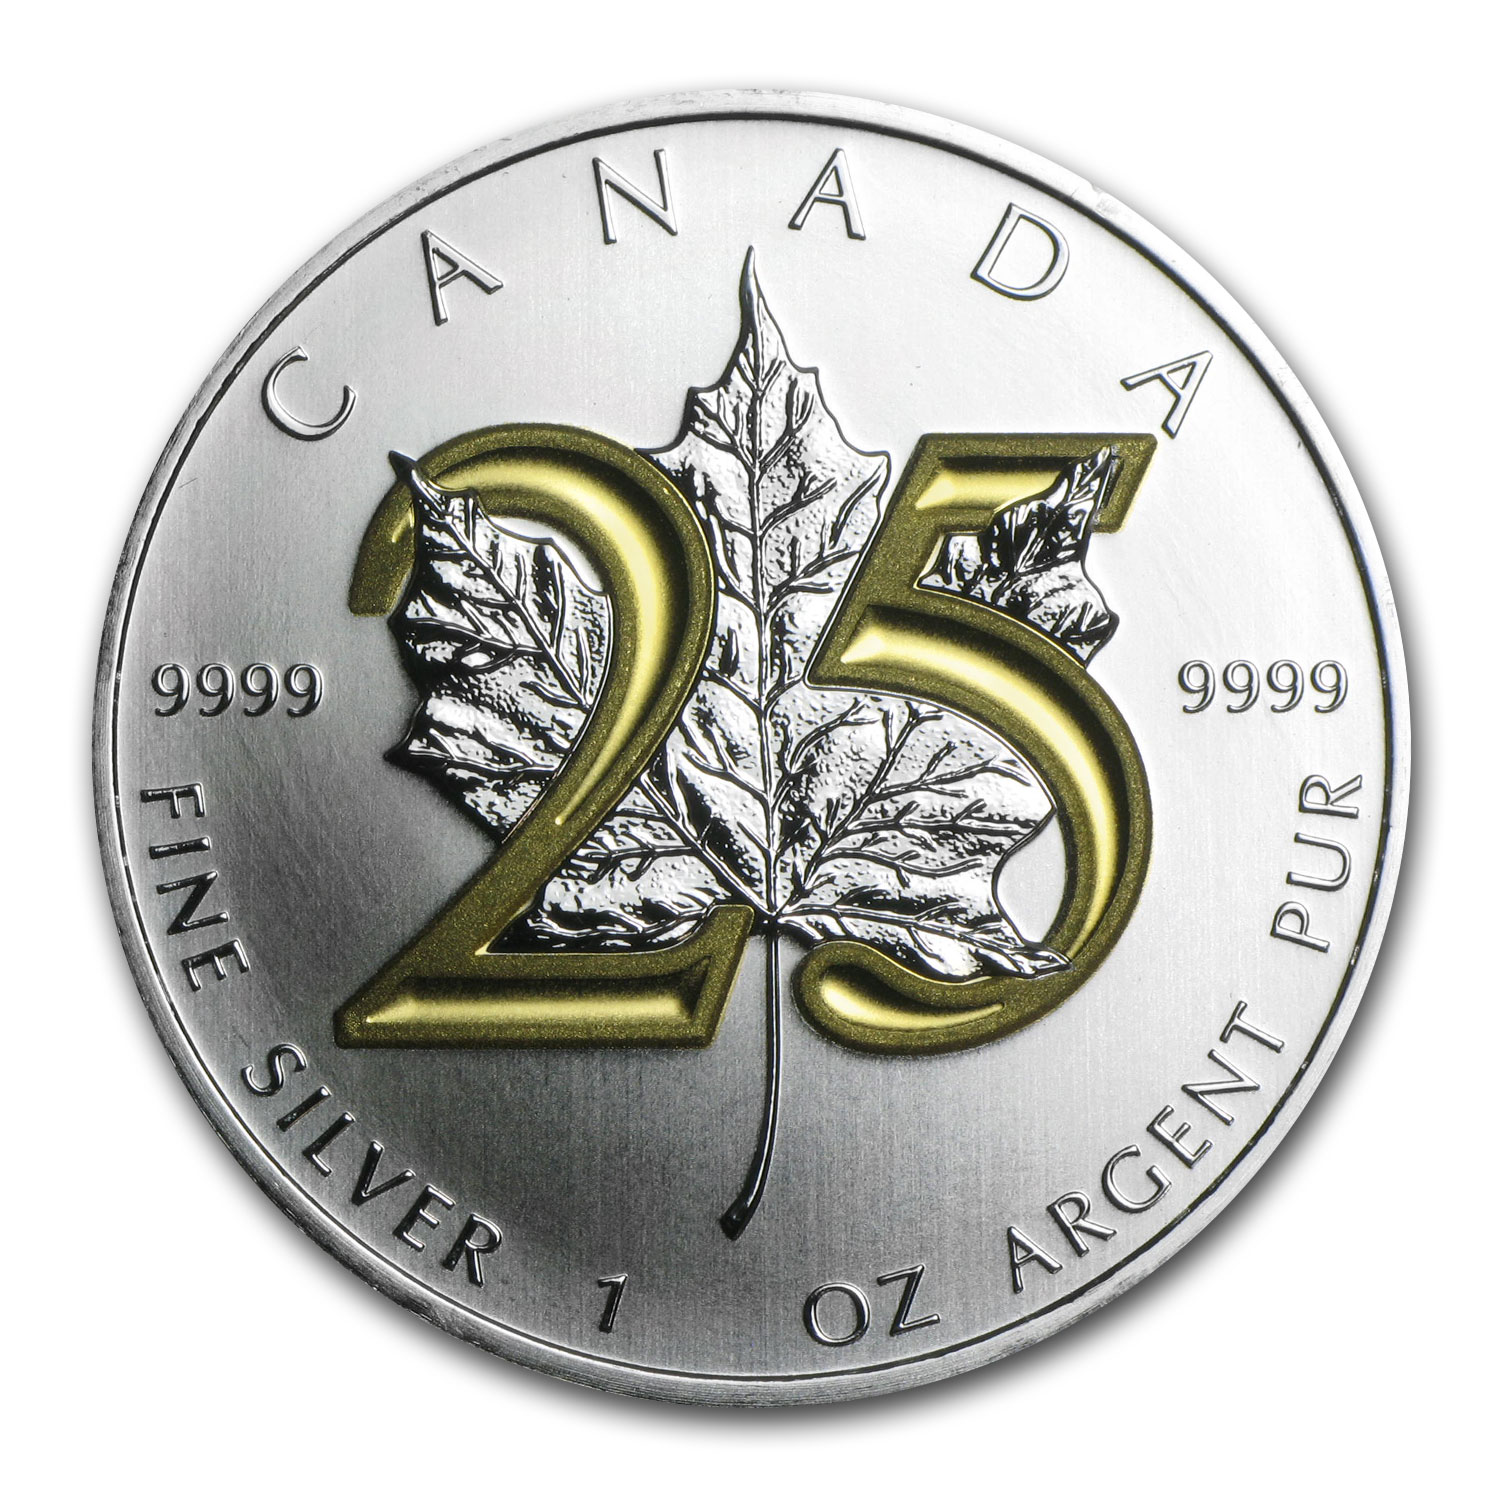 2013 1 oz Silver Canadian Maple Leaf (25th Anniv, Gilded)